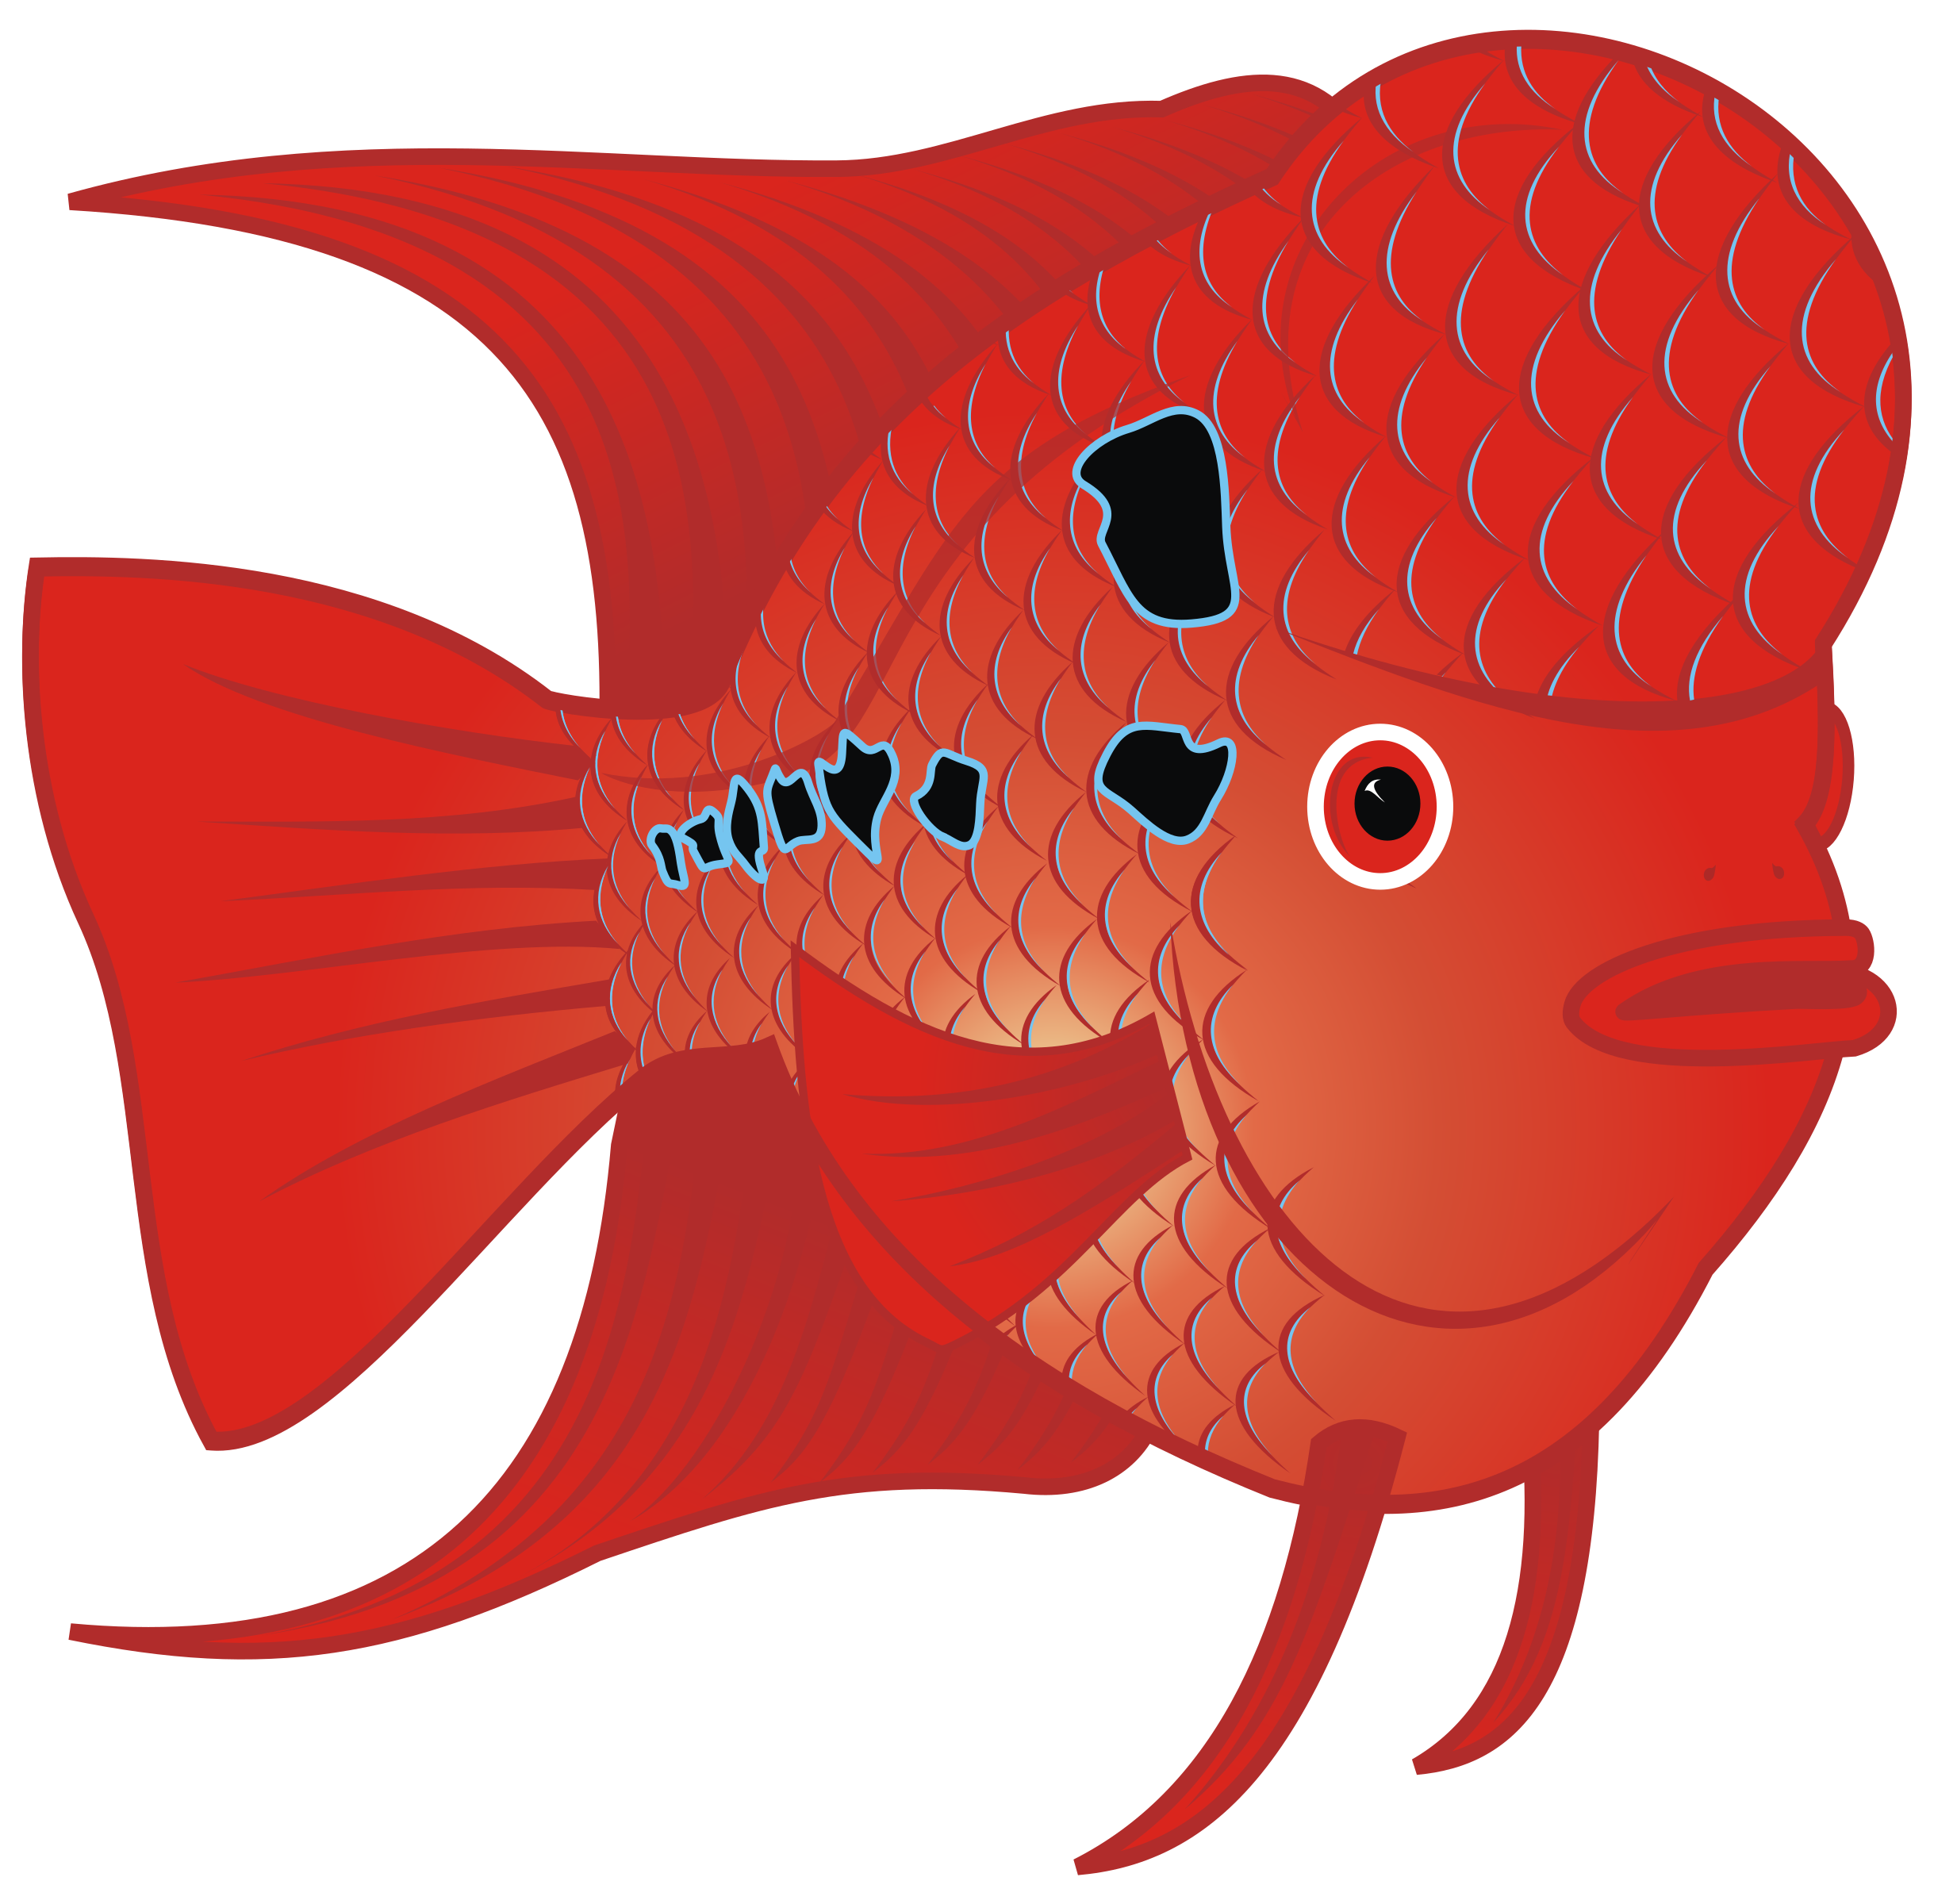 Swimsuit clipart red. Goldfish icons png free